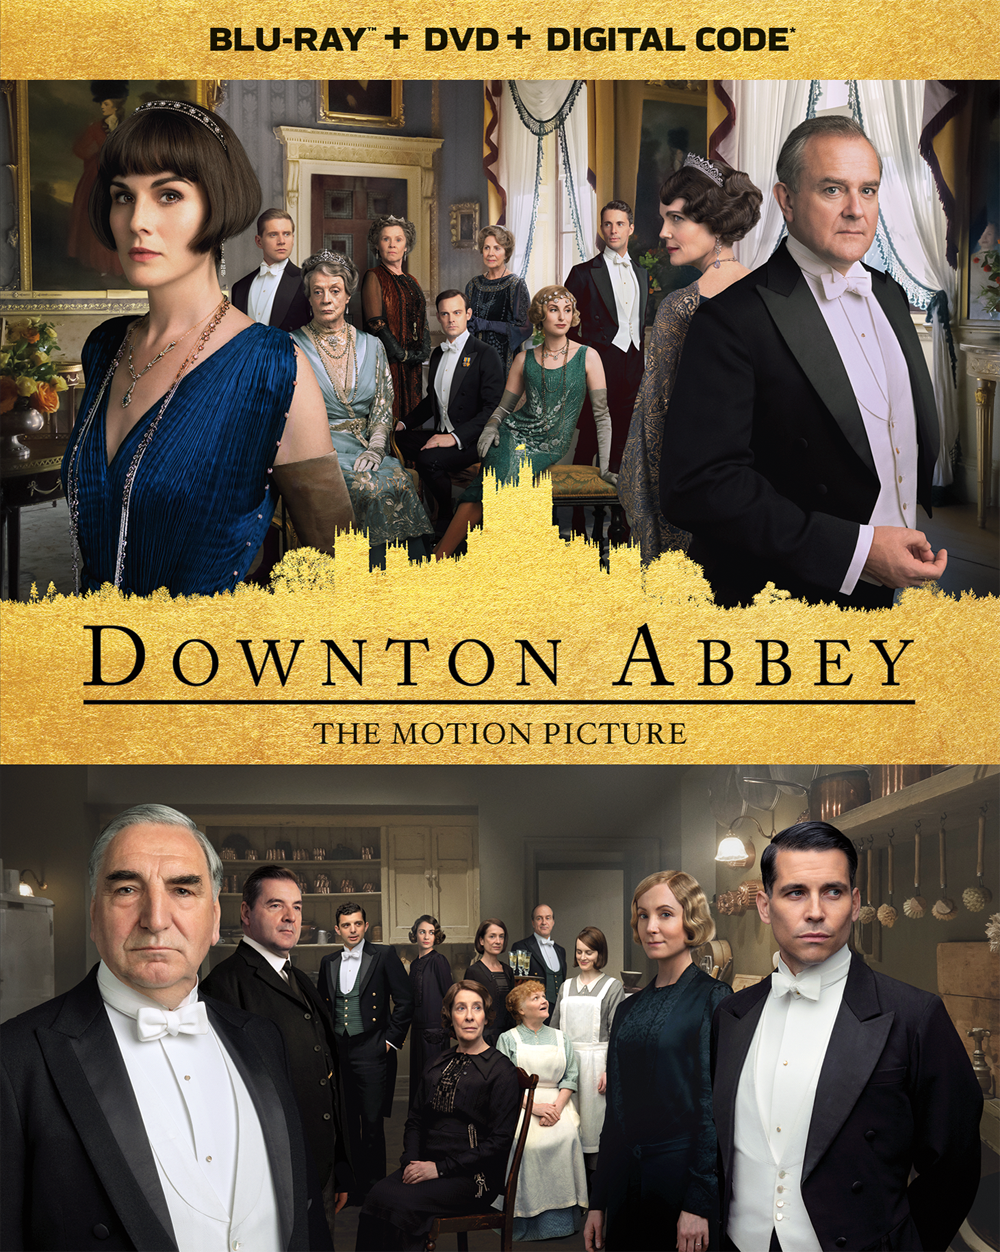 Downton Abbey Movie Blu-Ray + DVD + Digital Code Cover (2019)